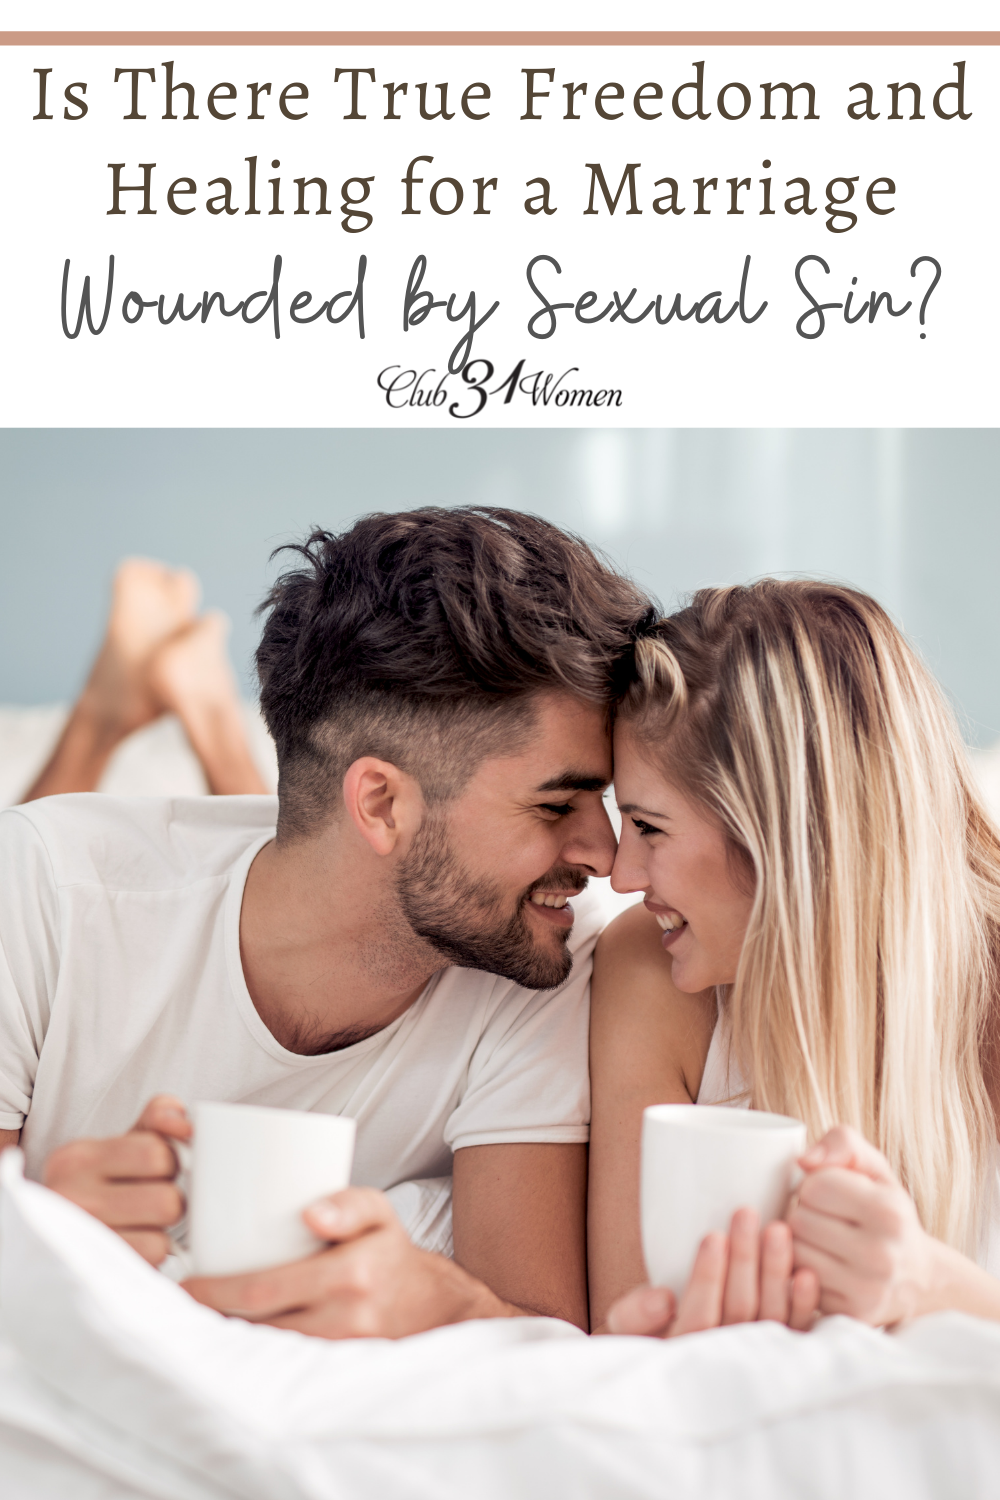 Does your marriage feel trapped by sexual sin? Are you afraid you will never experience the freedom you and your spouse are seeking? via @Club31Women